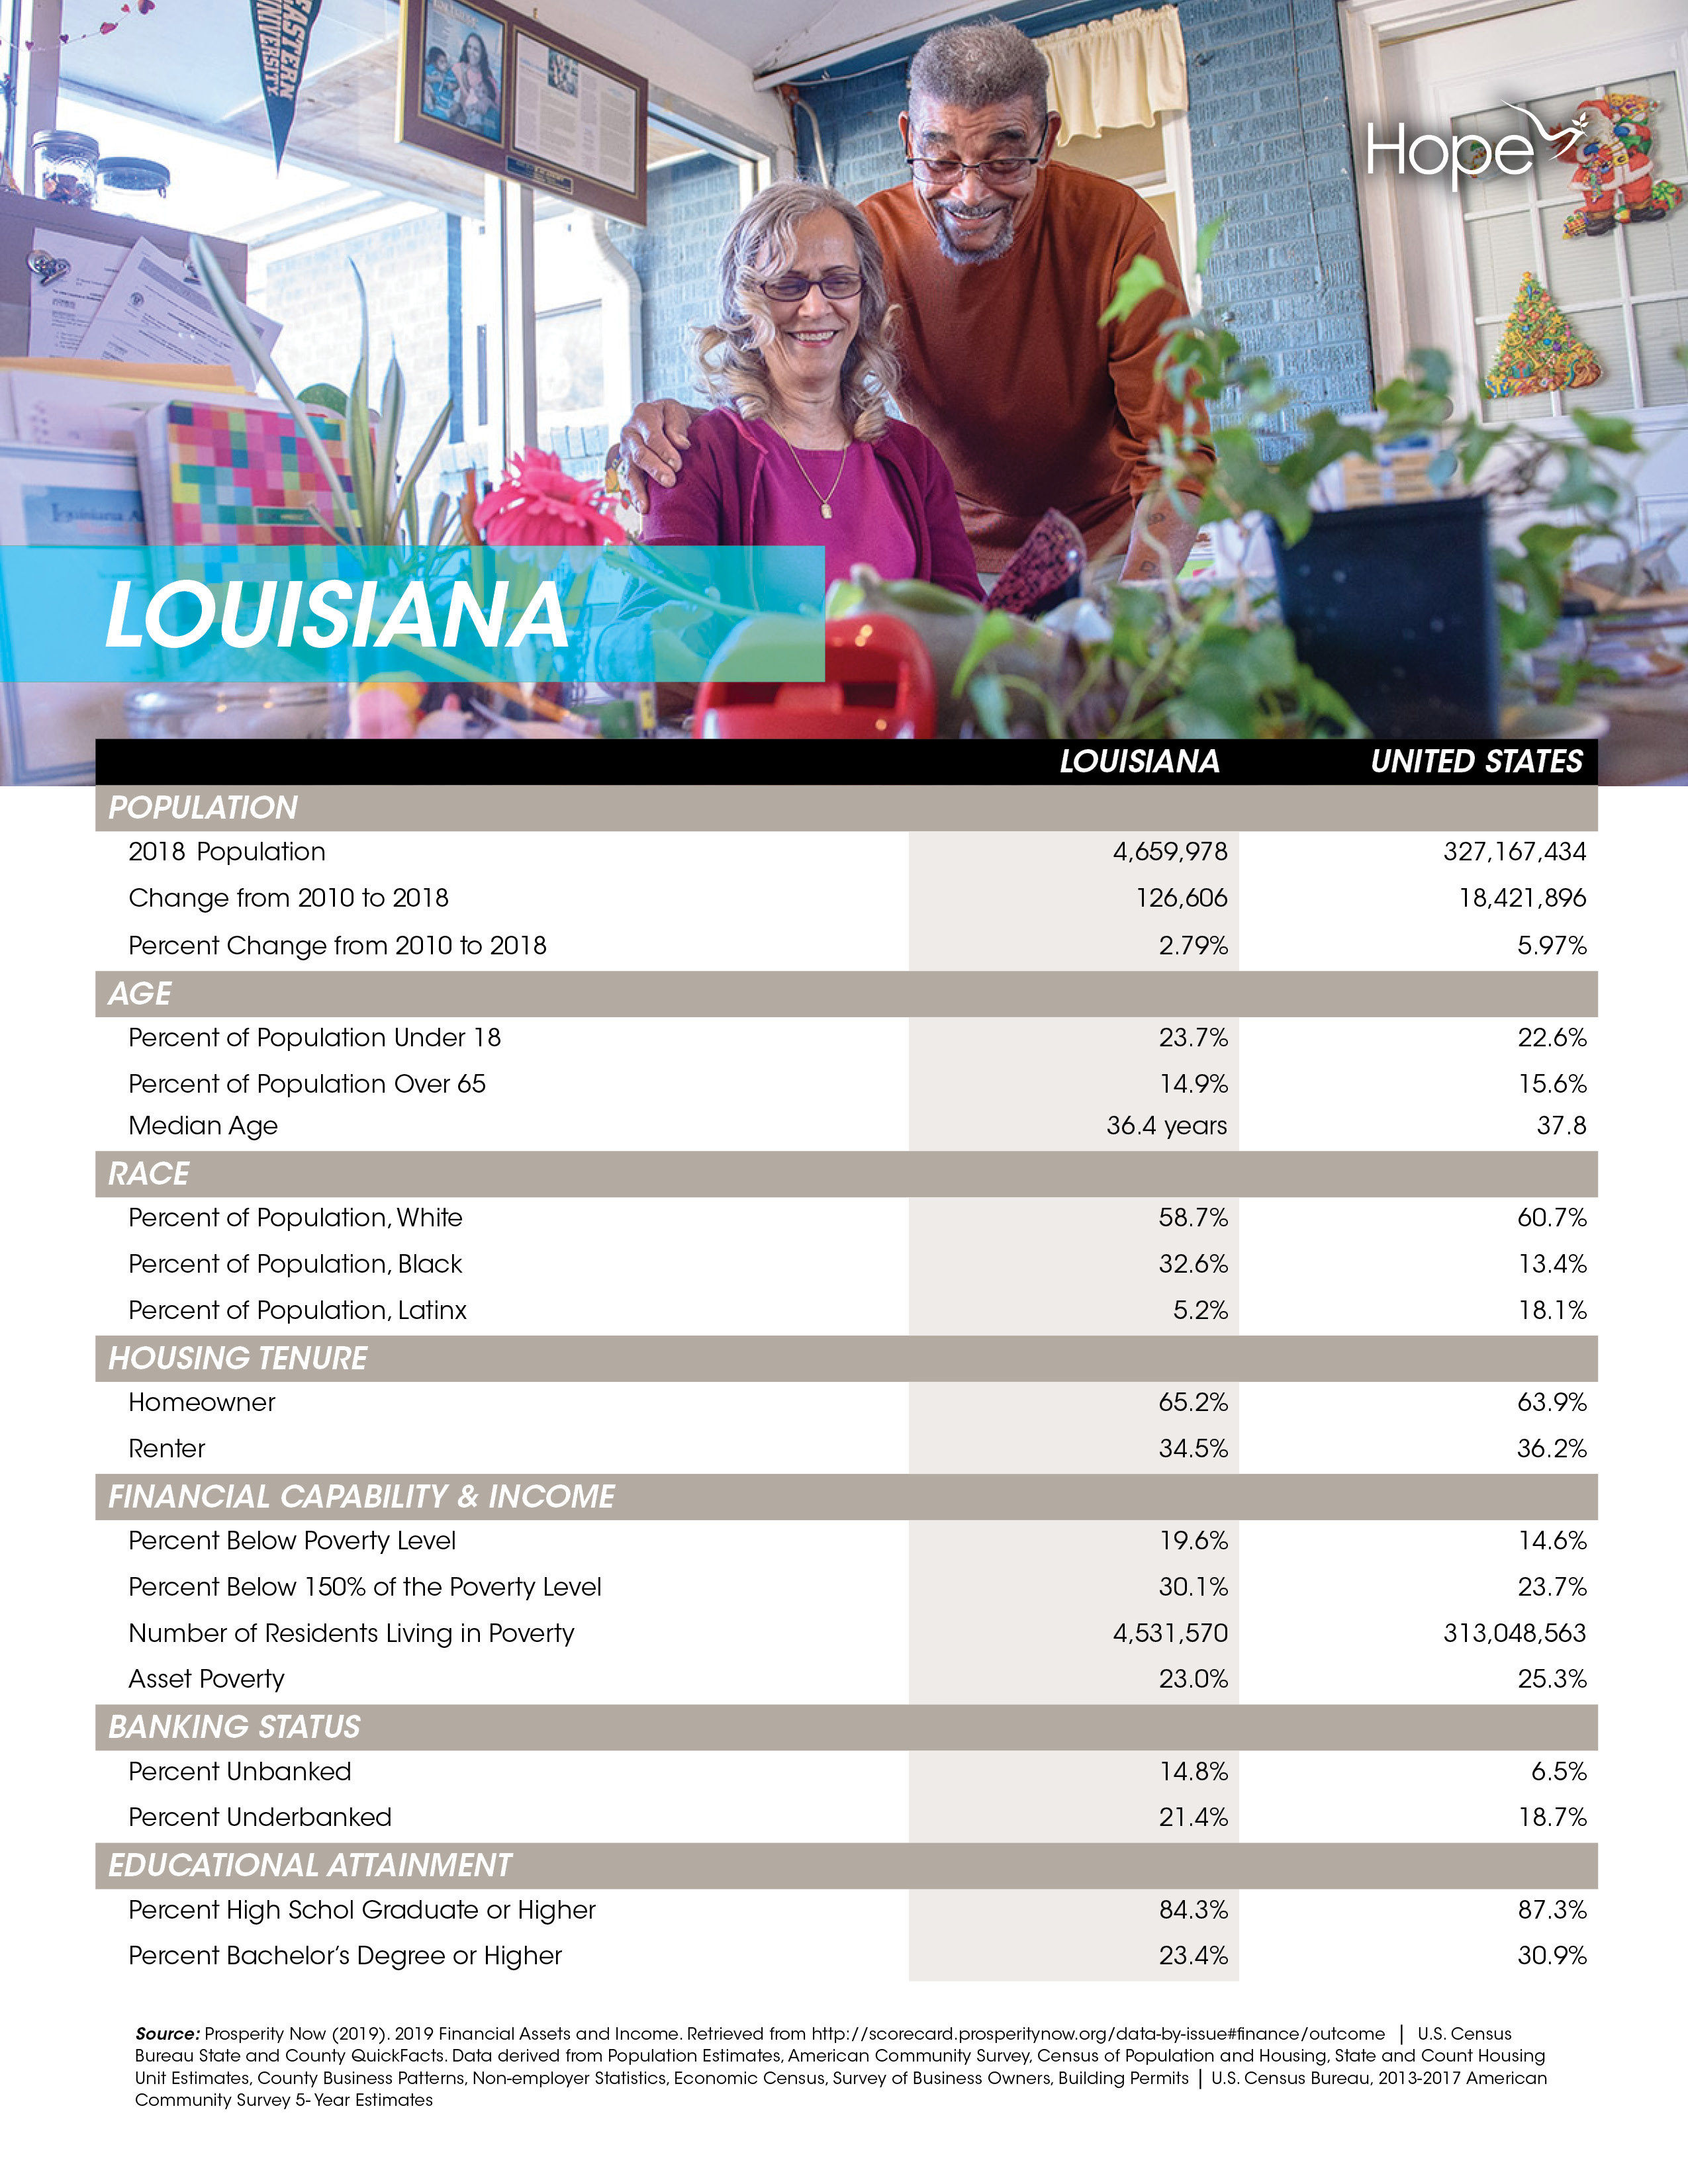 Louisiana - State Profiles